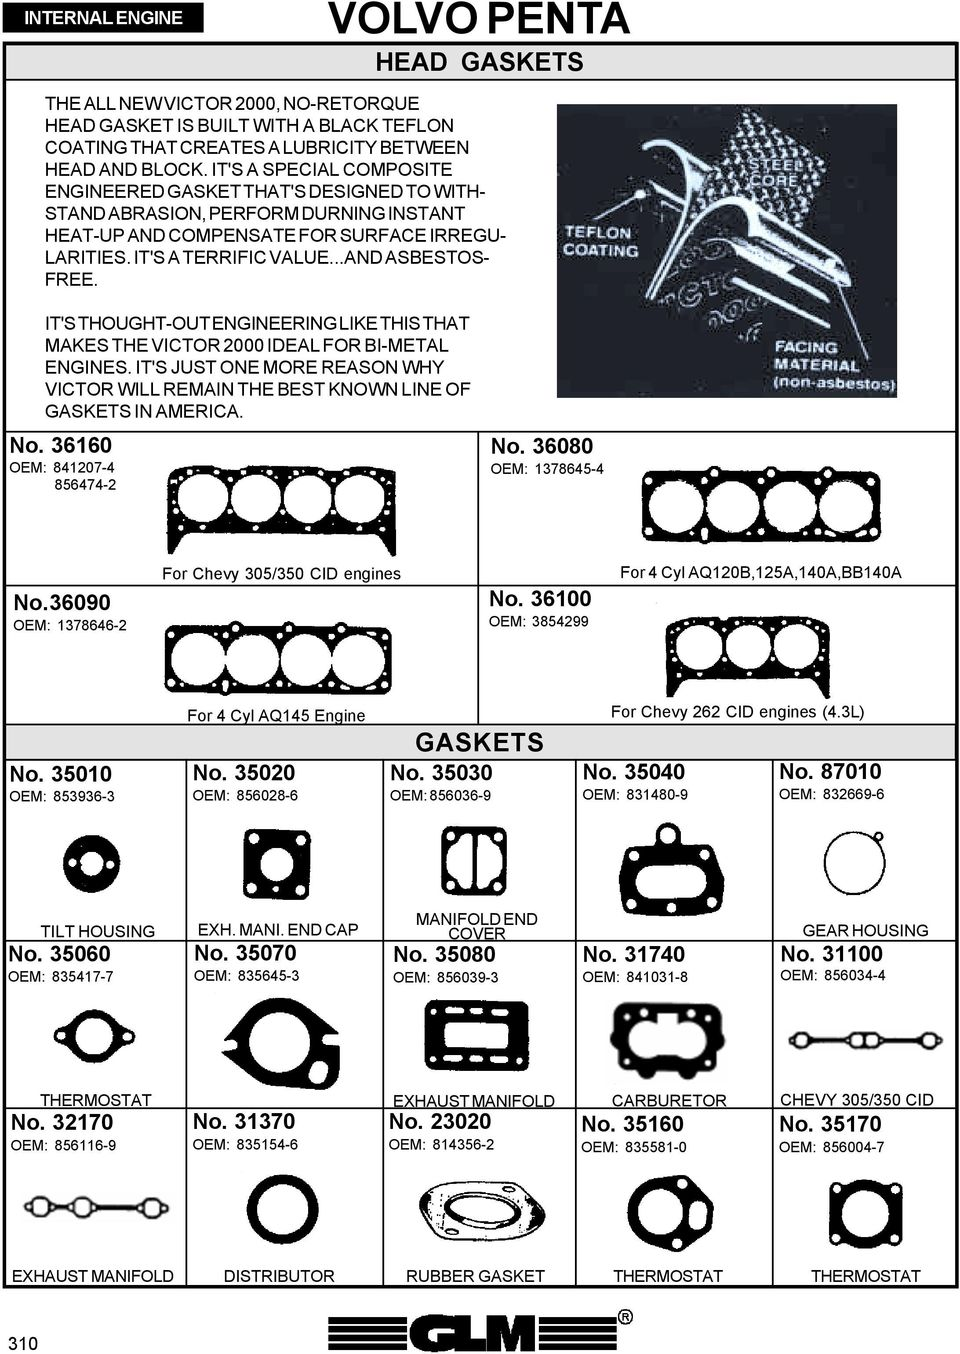 Volvo Penta Page Guide Cooling System Drive Systems Transom 1984 Aq125a Engine Diagram Its Thoughtout Engineering Like This That Makes The Victor 2000 Ideal For Bimetal Engines